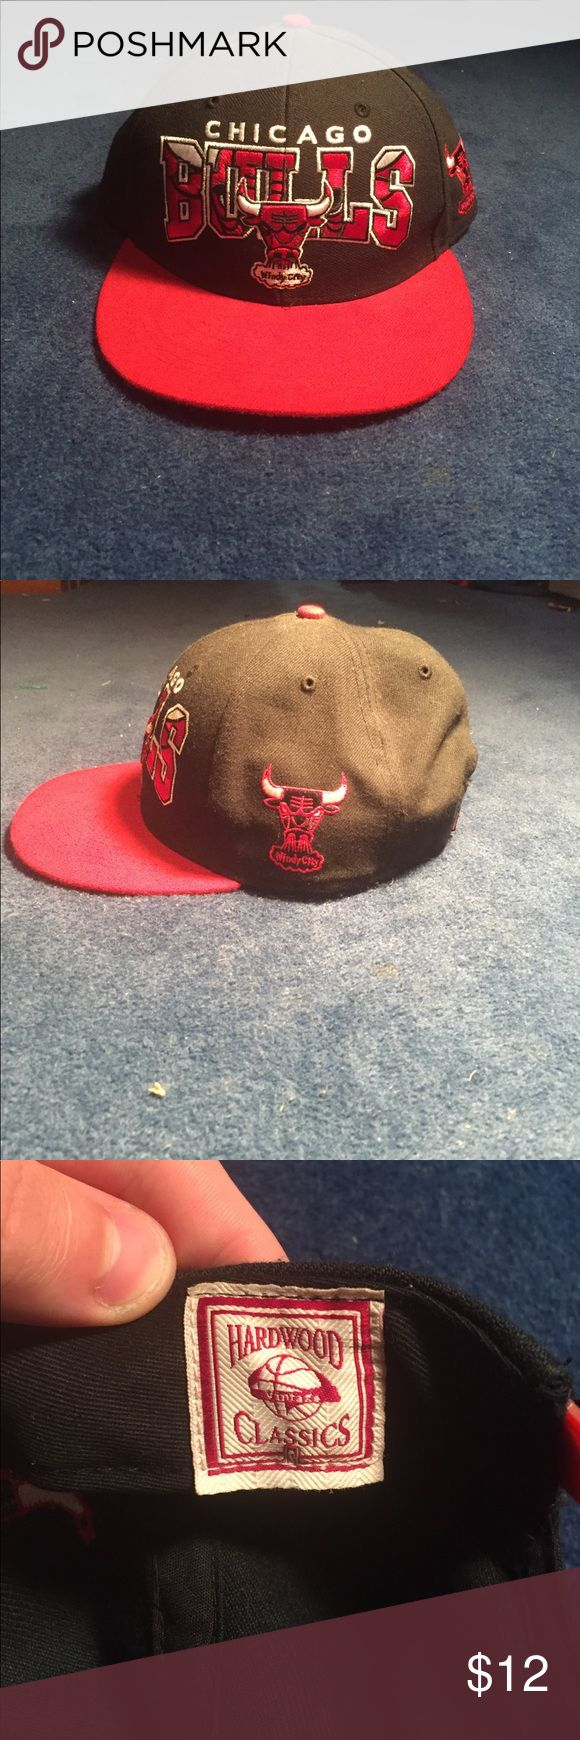 NBA Chicago Bulls Snapback | Hardwood Classics chicago bulls snapback hat, slightly worn but still great condition. 47 brand Accessories Hats